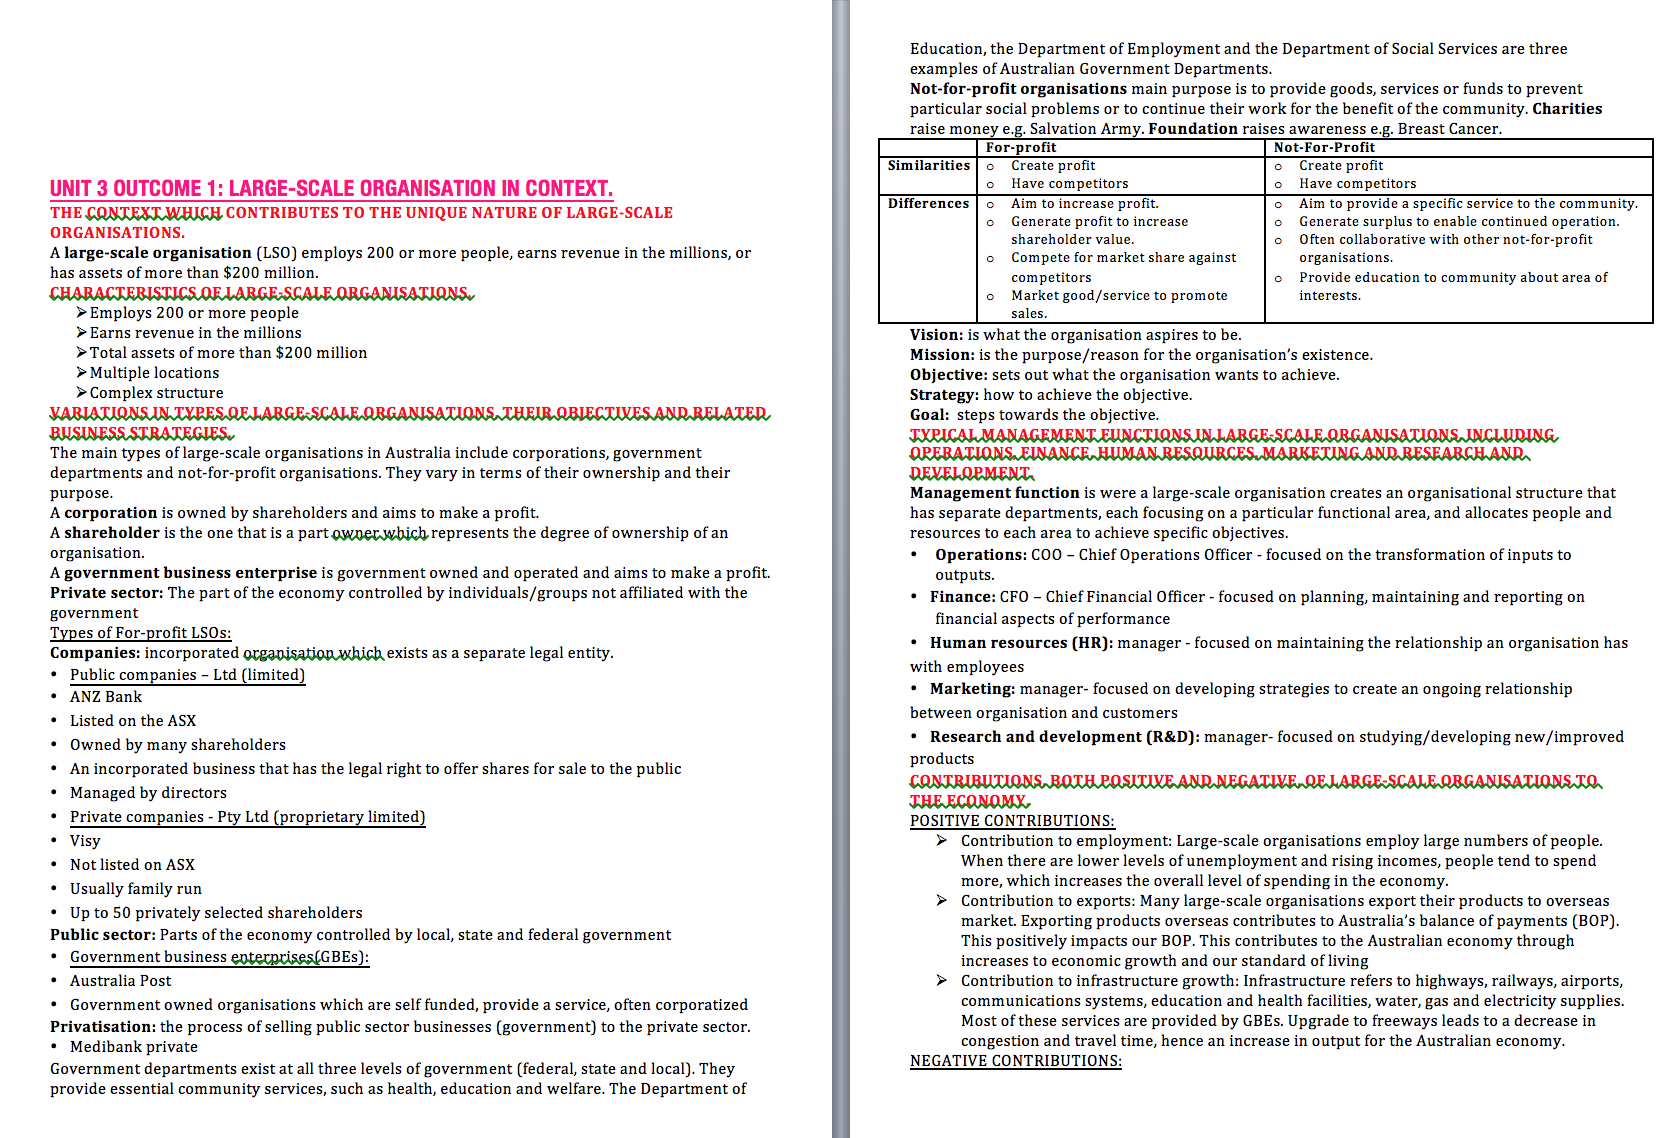 business admin unit 5 Below is an essay on business and admin unit 5 from anti essays, your source for research papers, essays, and term paper examples section 1 – understand how to support the organisation of a business event 1 when organising a business event, describe the range of support activities that may be required.